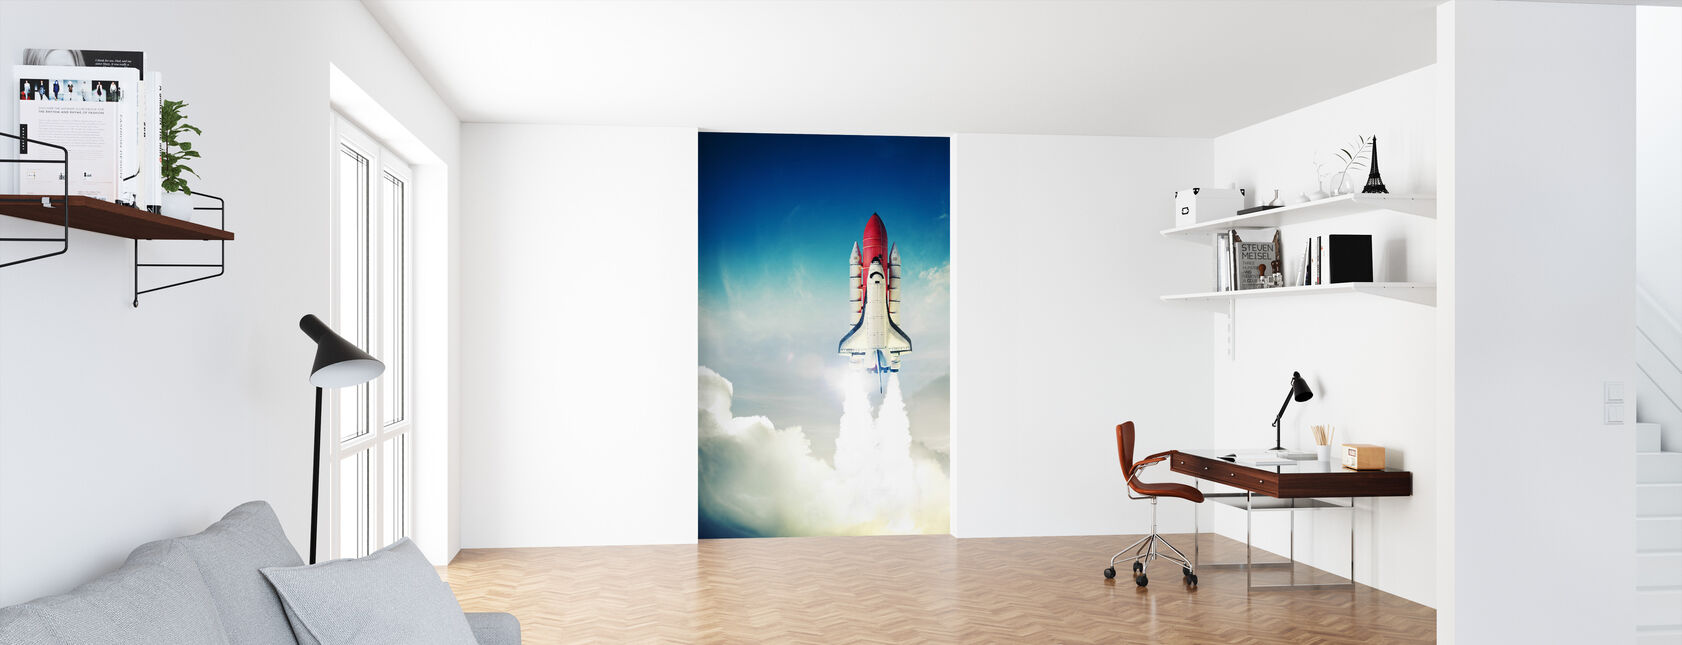 Space Shuttle opstijgen - Behang - Kantoor